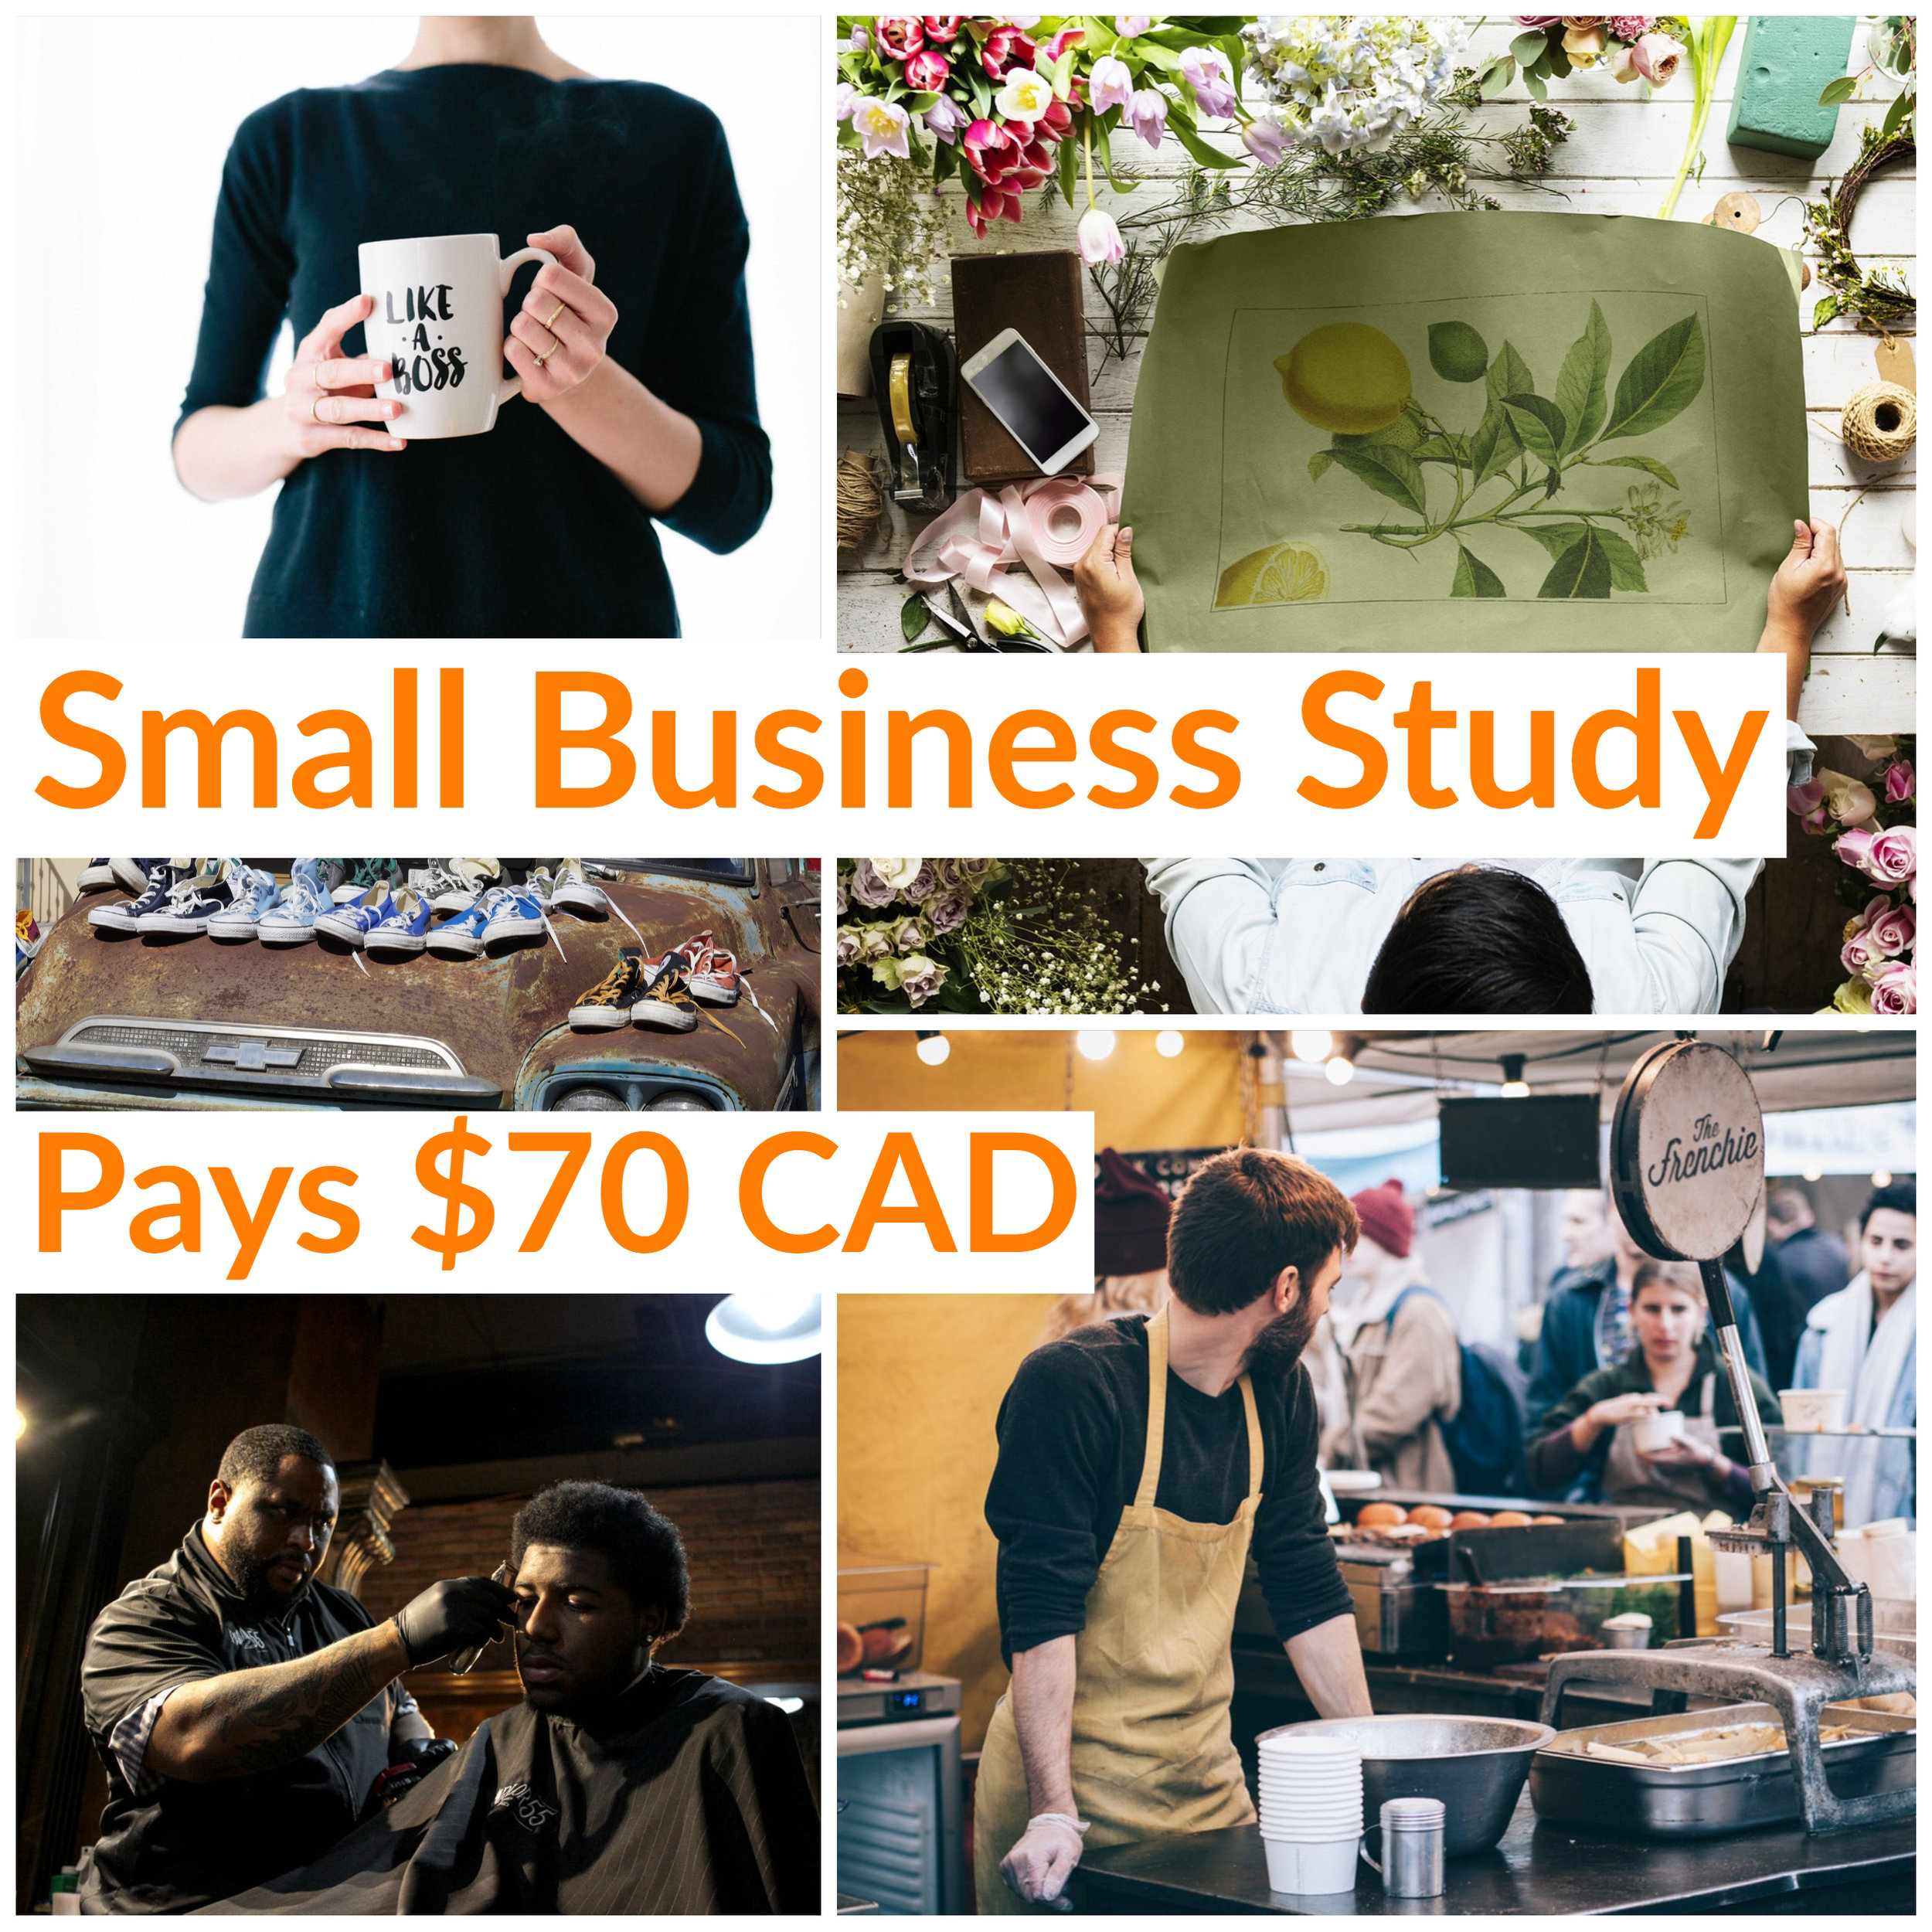 Gold & Gold - Small Business Study.jpg